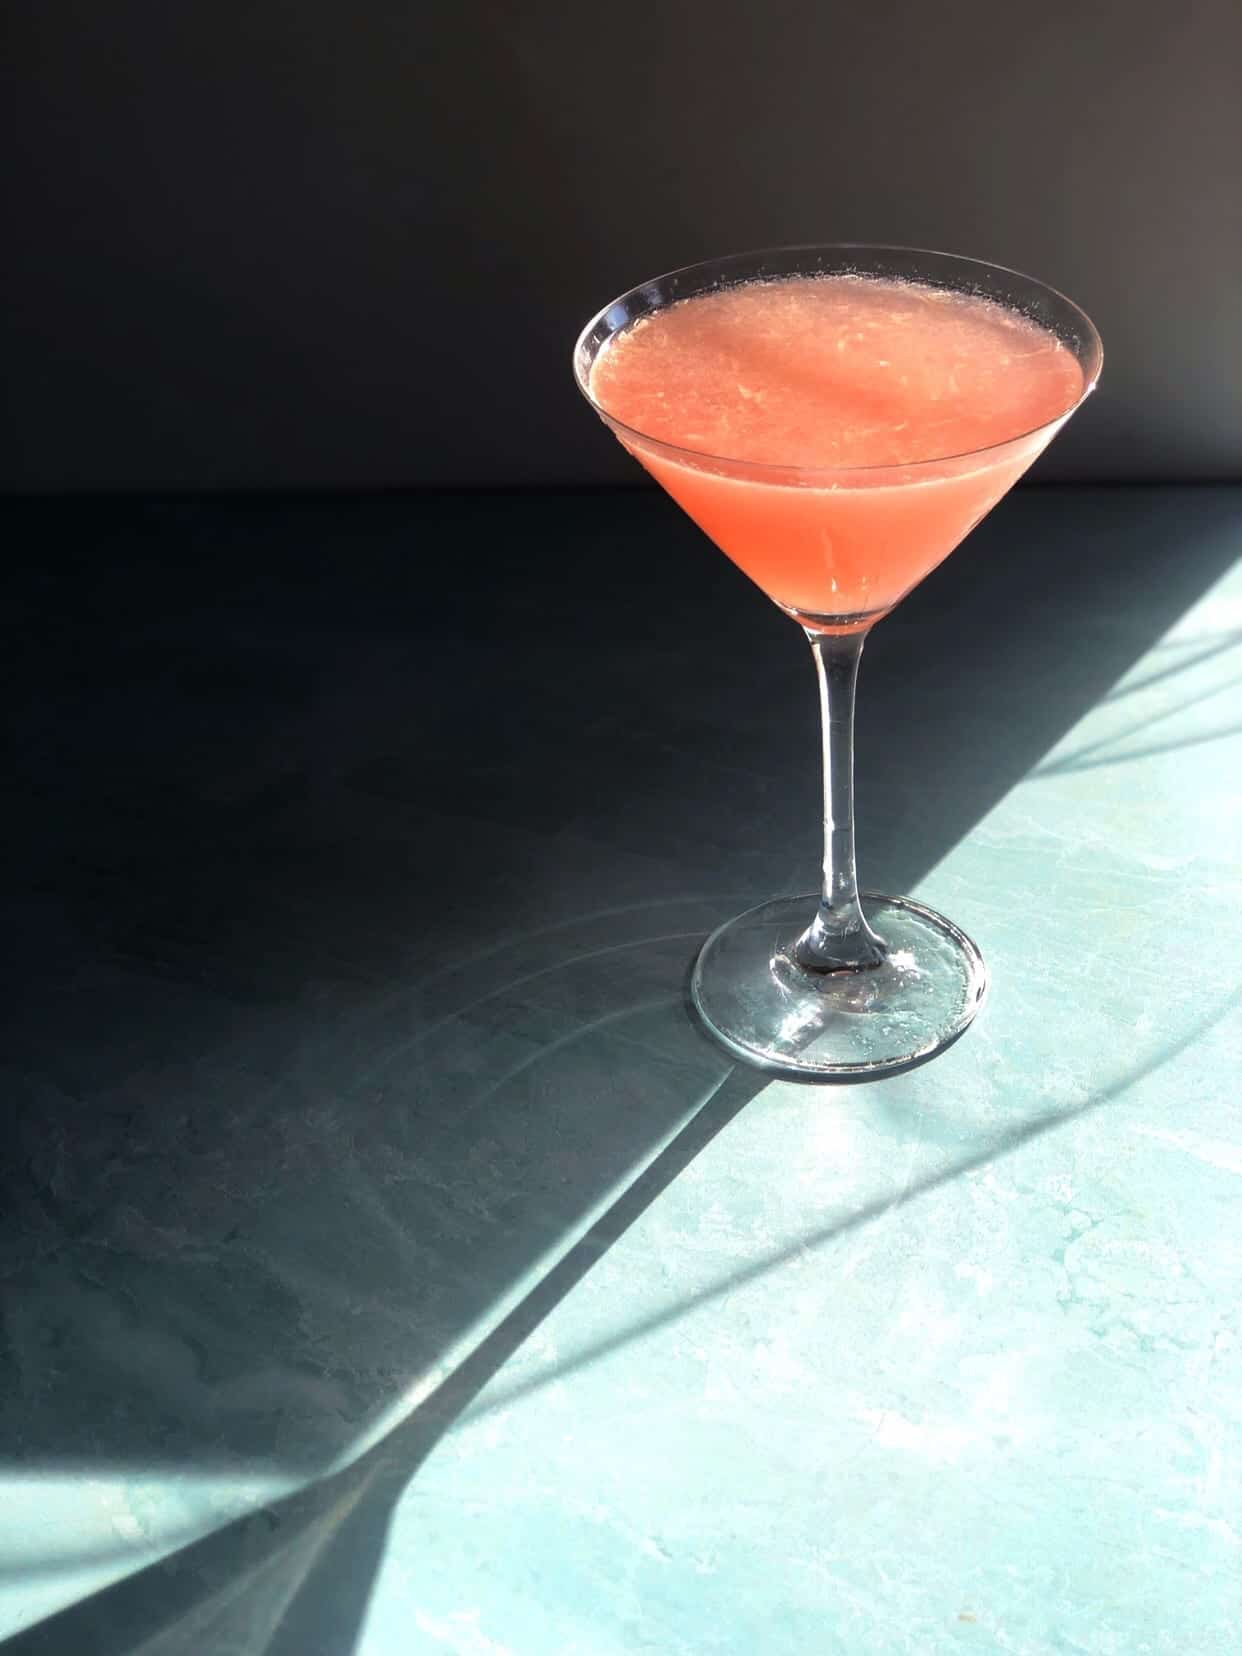 The Miami Vice – A  Rhubarb Cocktail